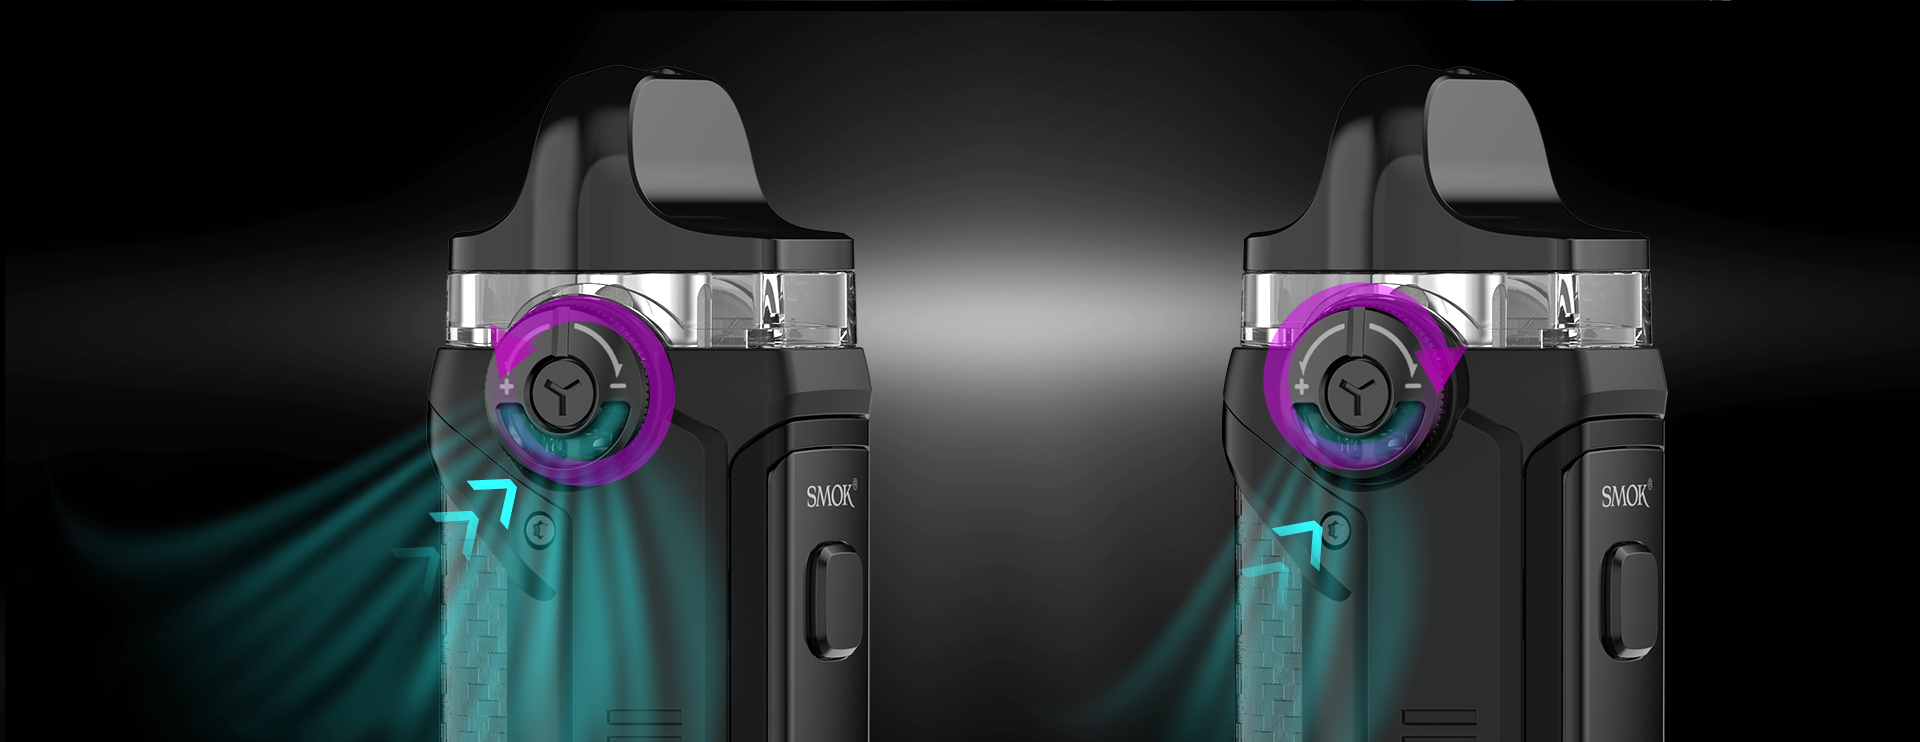 A graphic displaying an exterior airflow feature on the SMOK IPX80 vape.